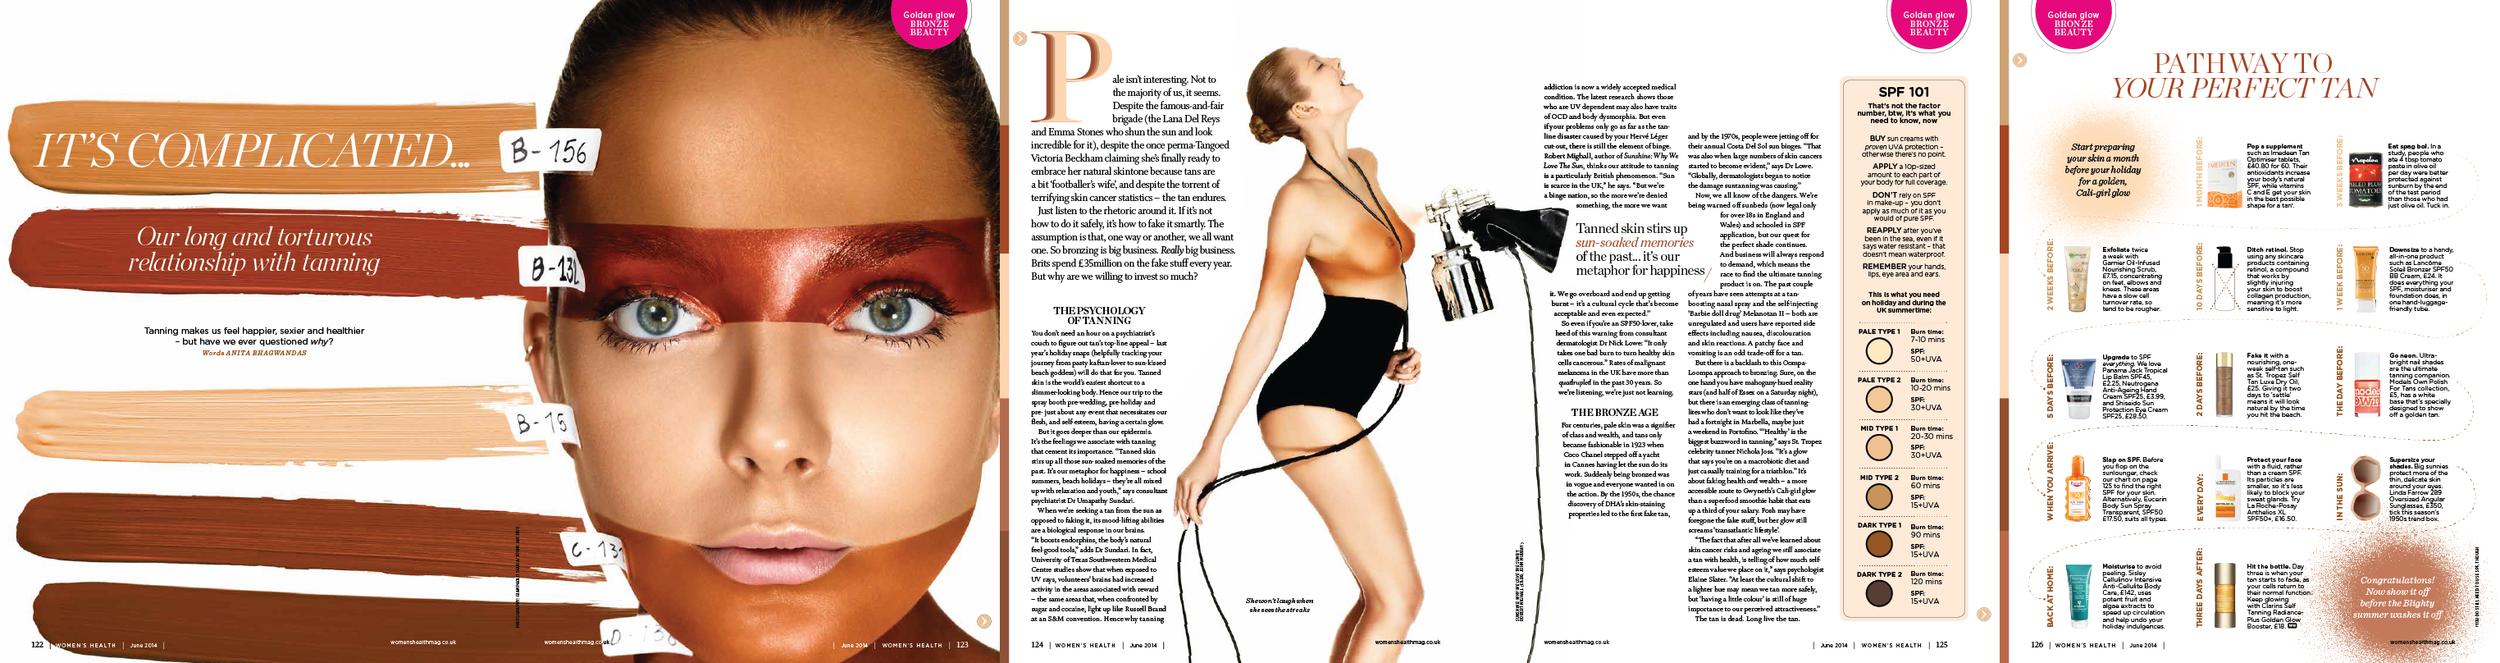 WOMEN'S HEALTH - IT'S COMPLICATED, OUR LONG AND TORTUROUS RELATIONSHIP WITH TANNING